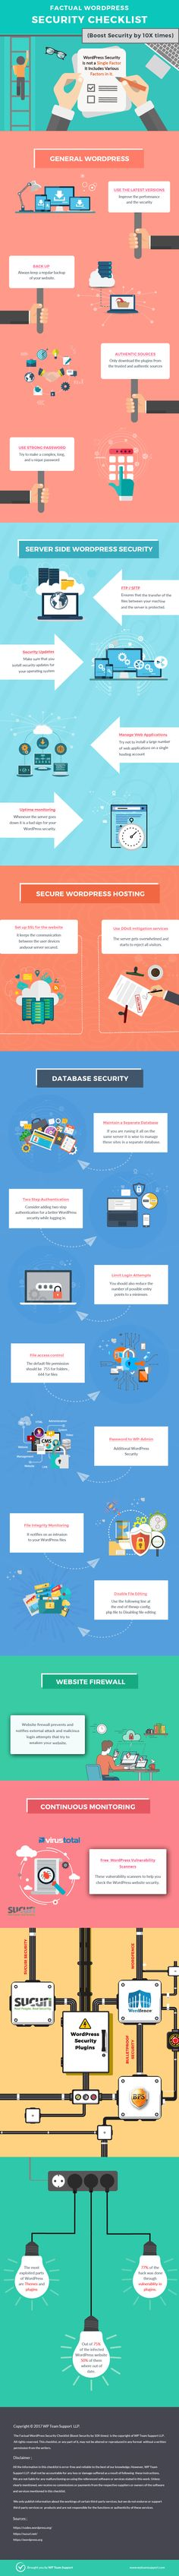 20+ Ways to Make Your #WordPress Website More Secure #Infographic #WebDesign